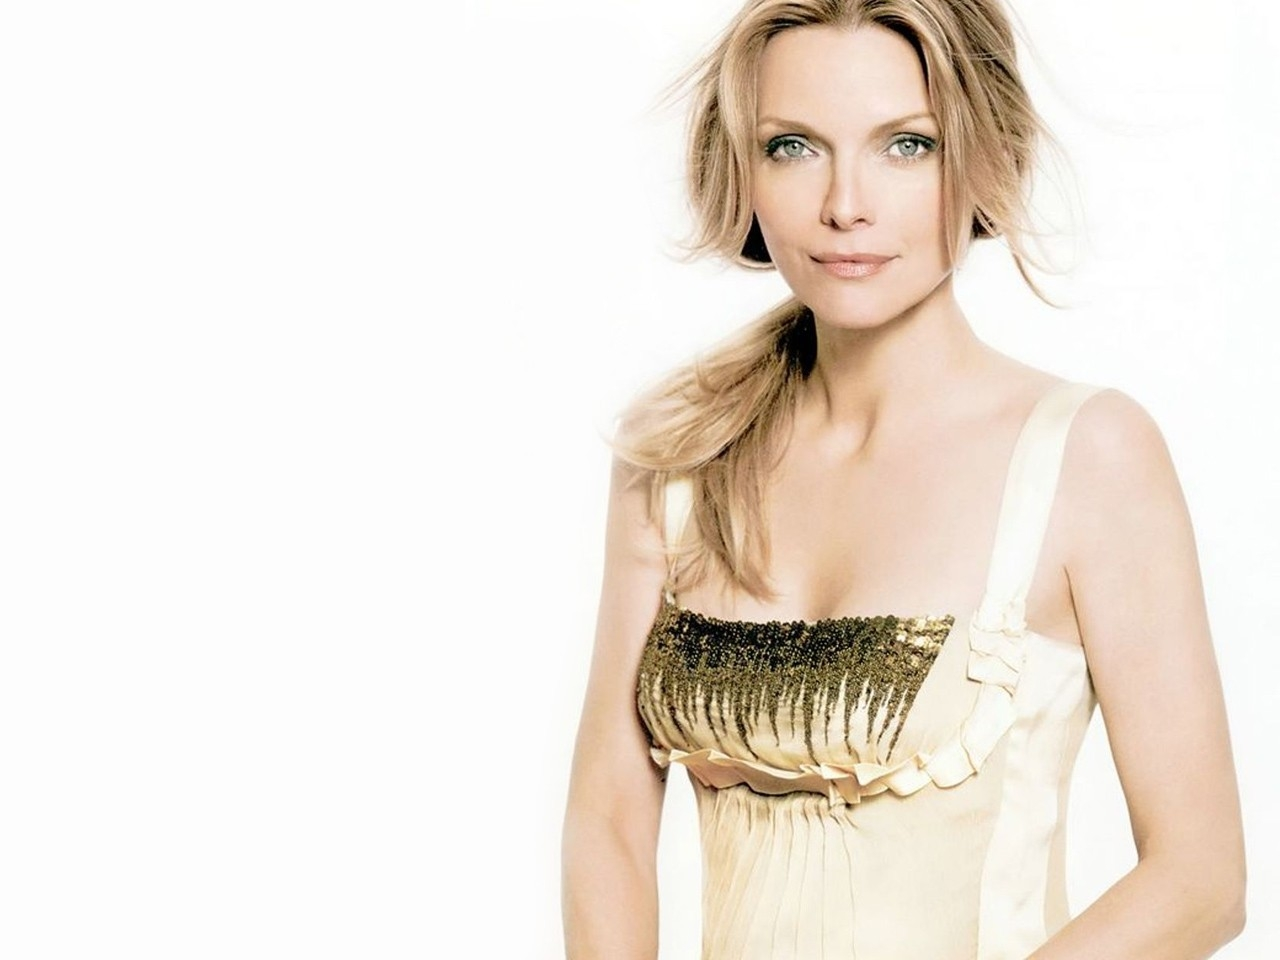 Michelle Pfeiffer Wallpaper 54297 1280x960px 1280x960